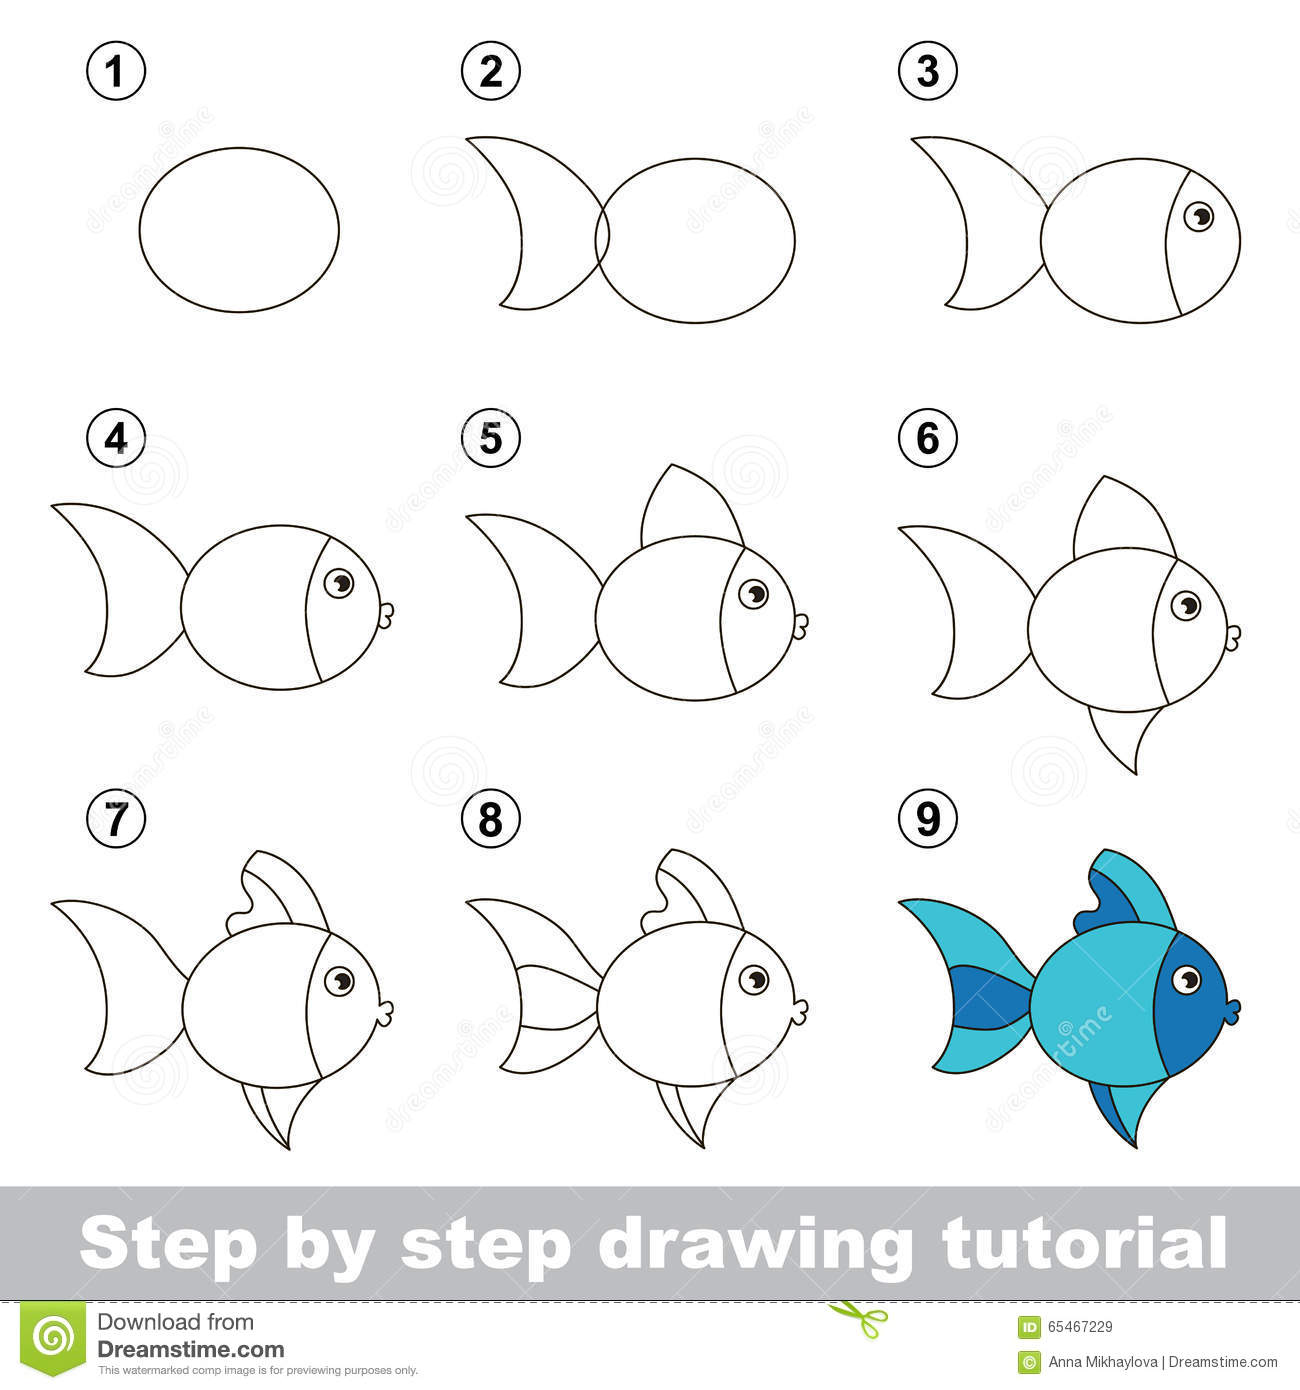 Drawing tutorial how to draw a cute fish stock vector for Learn to draw cartoons step by step lessons